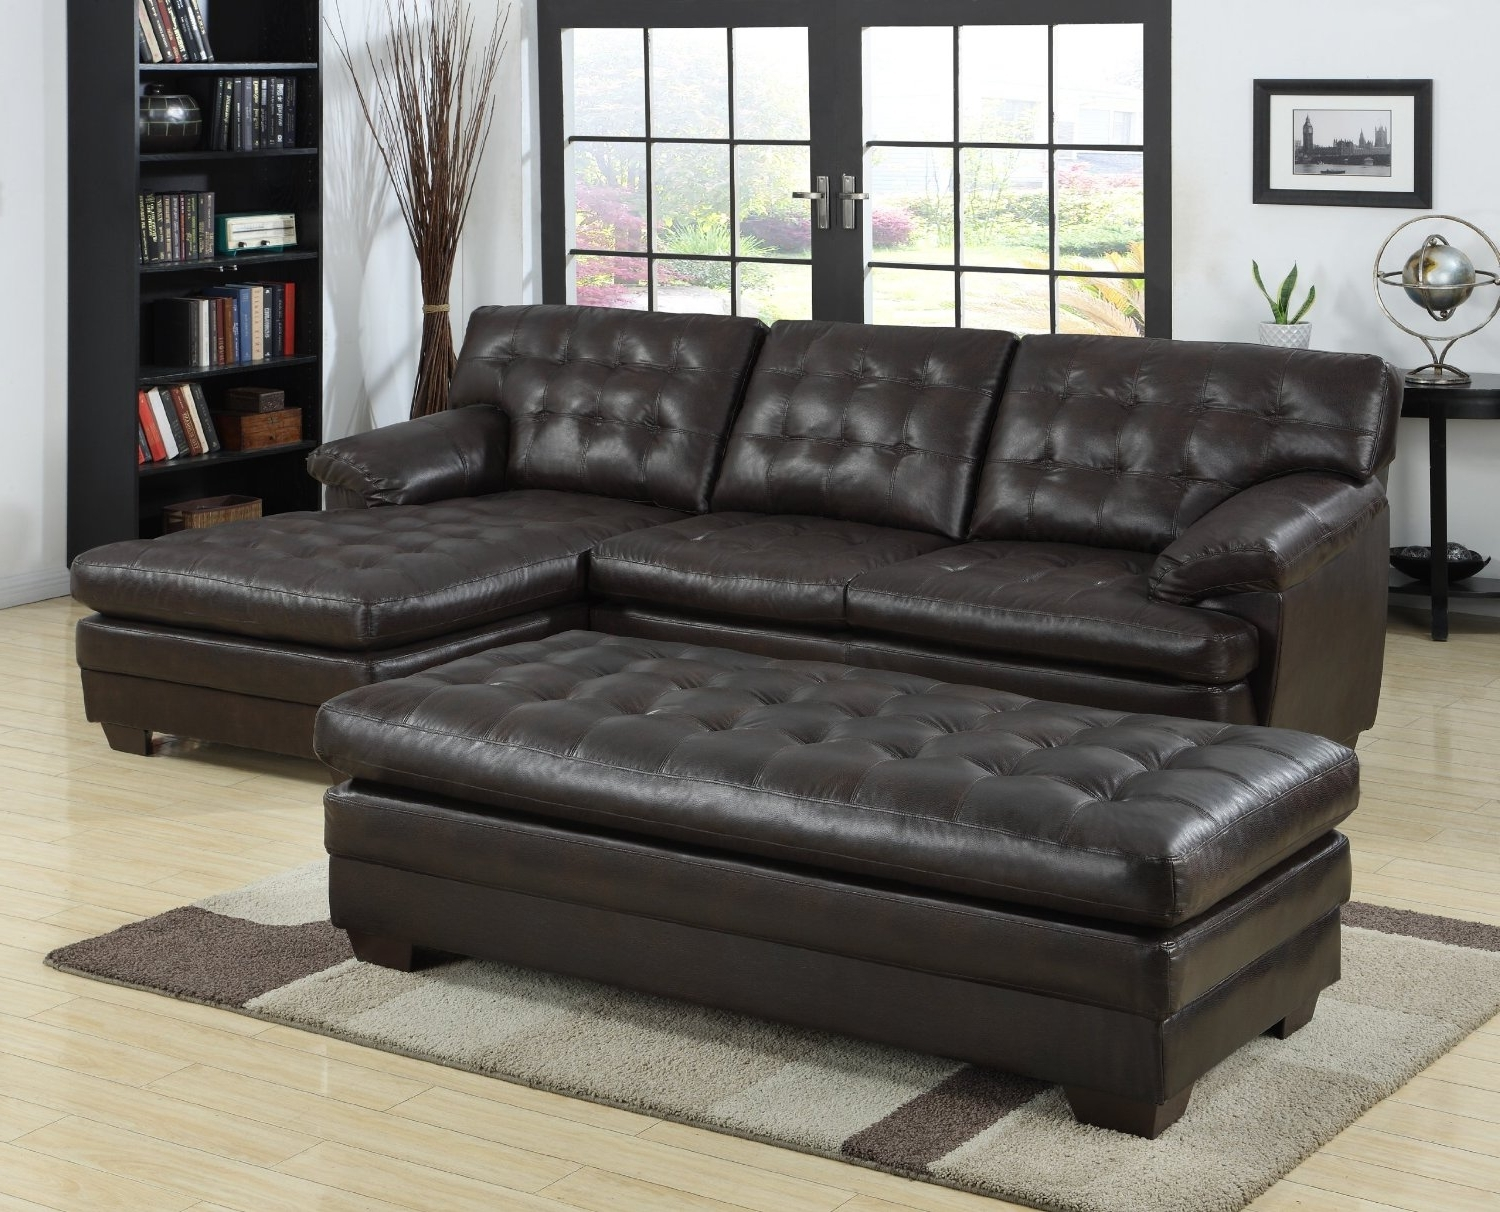 Leather Sectionals With Chaise And Ottoman Within Current Black Tufted Leather Sectional Sofa With Chaise And Bench Seat (View 7 of 15)